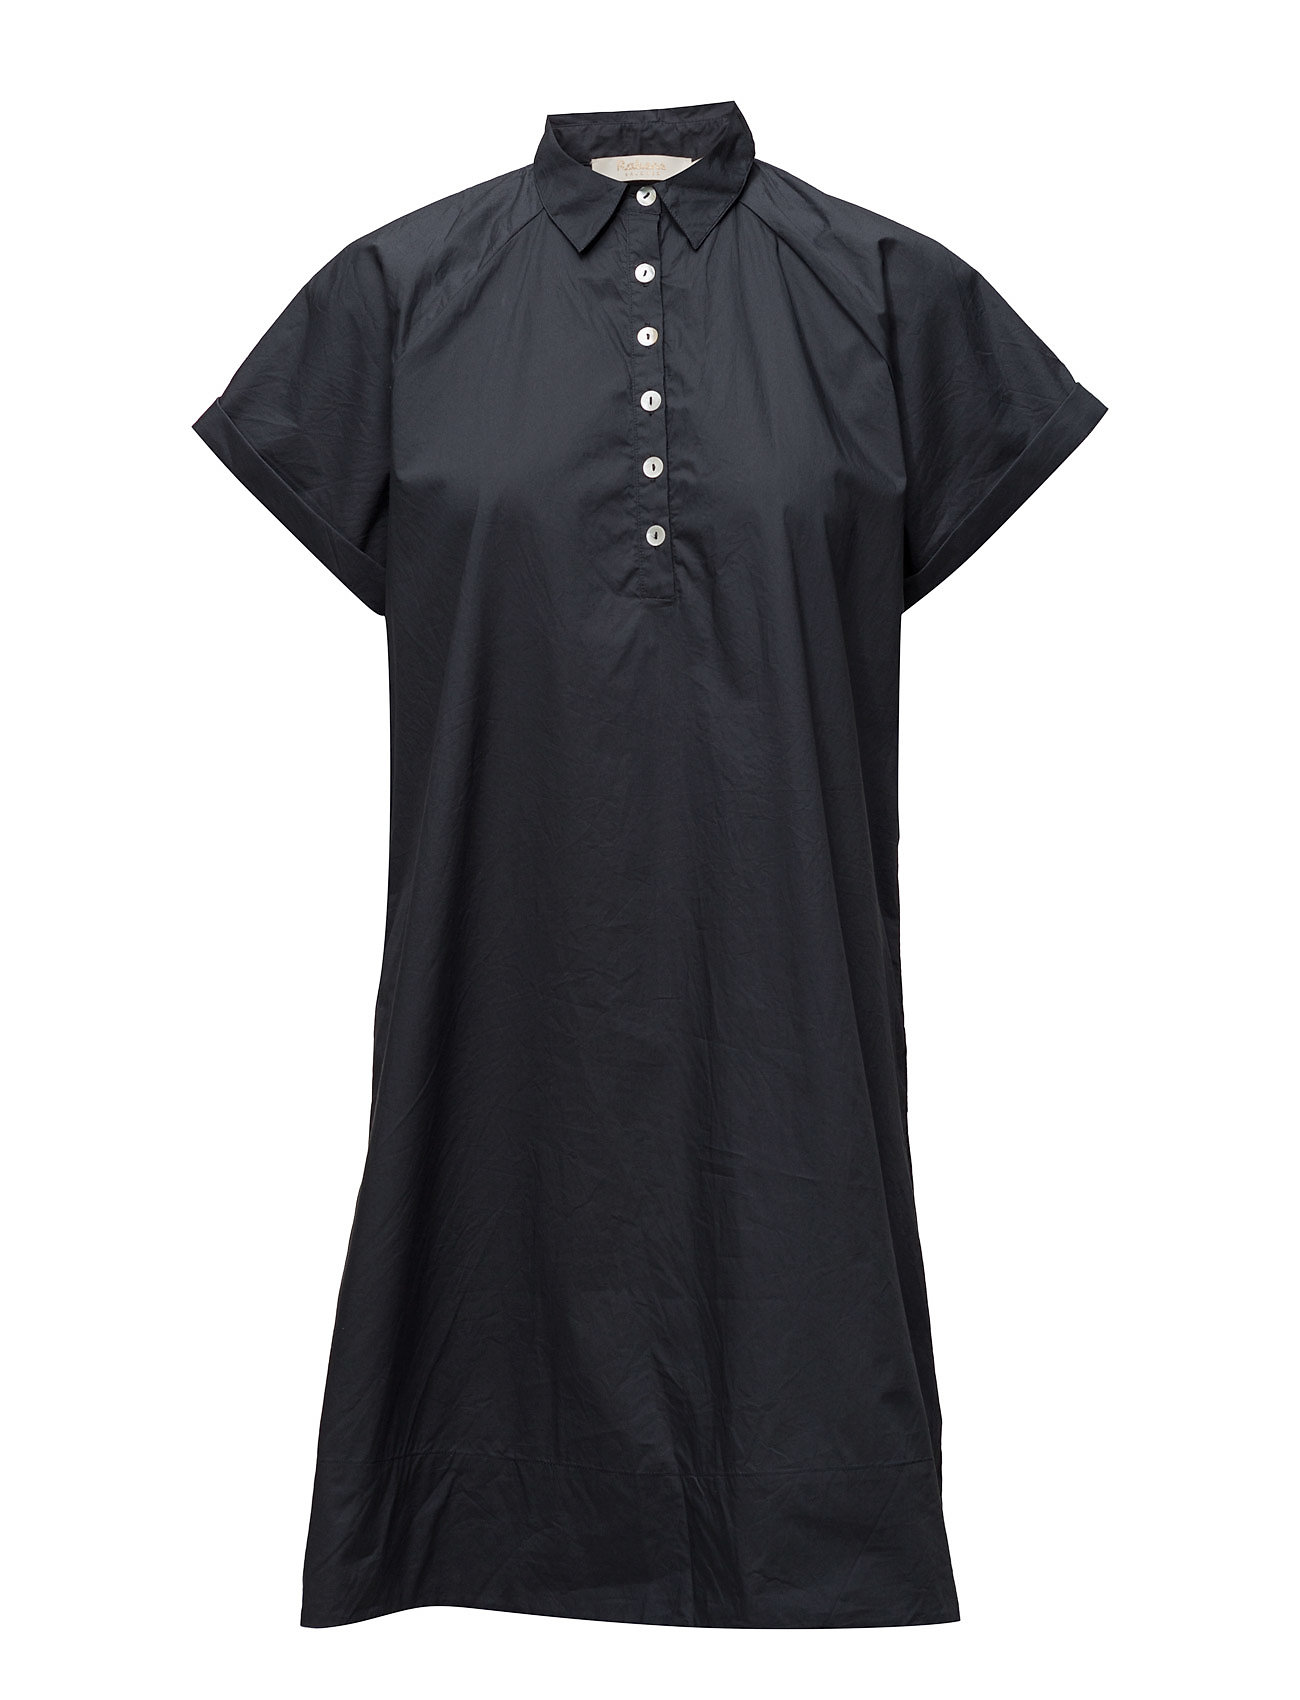 rabens saloner – Messy cotton dress på boozt.com dk